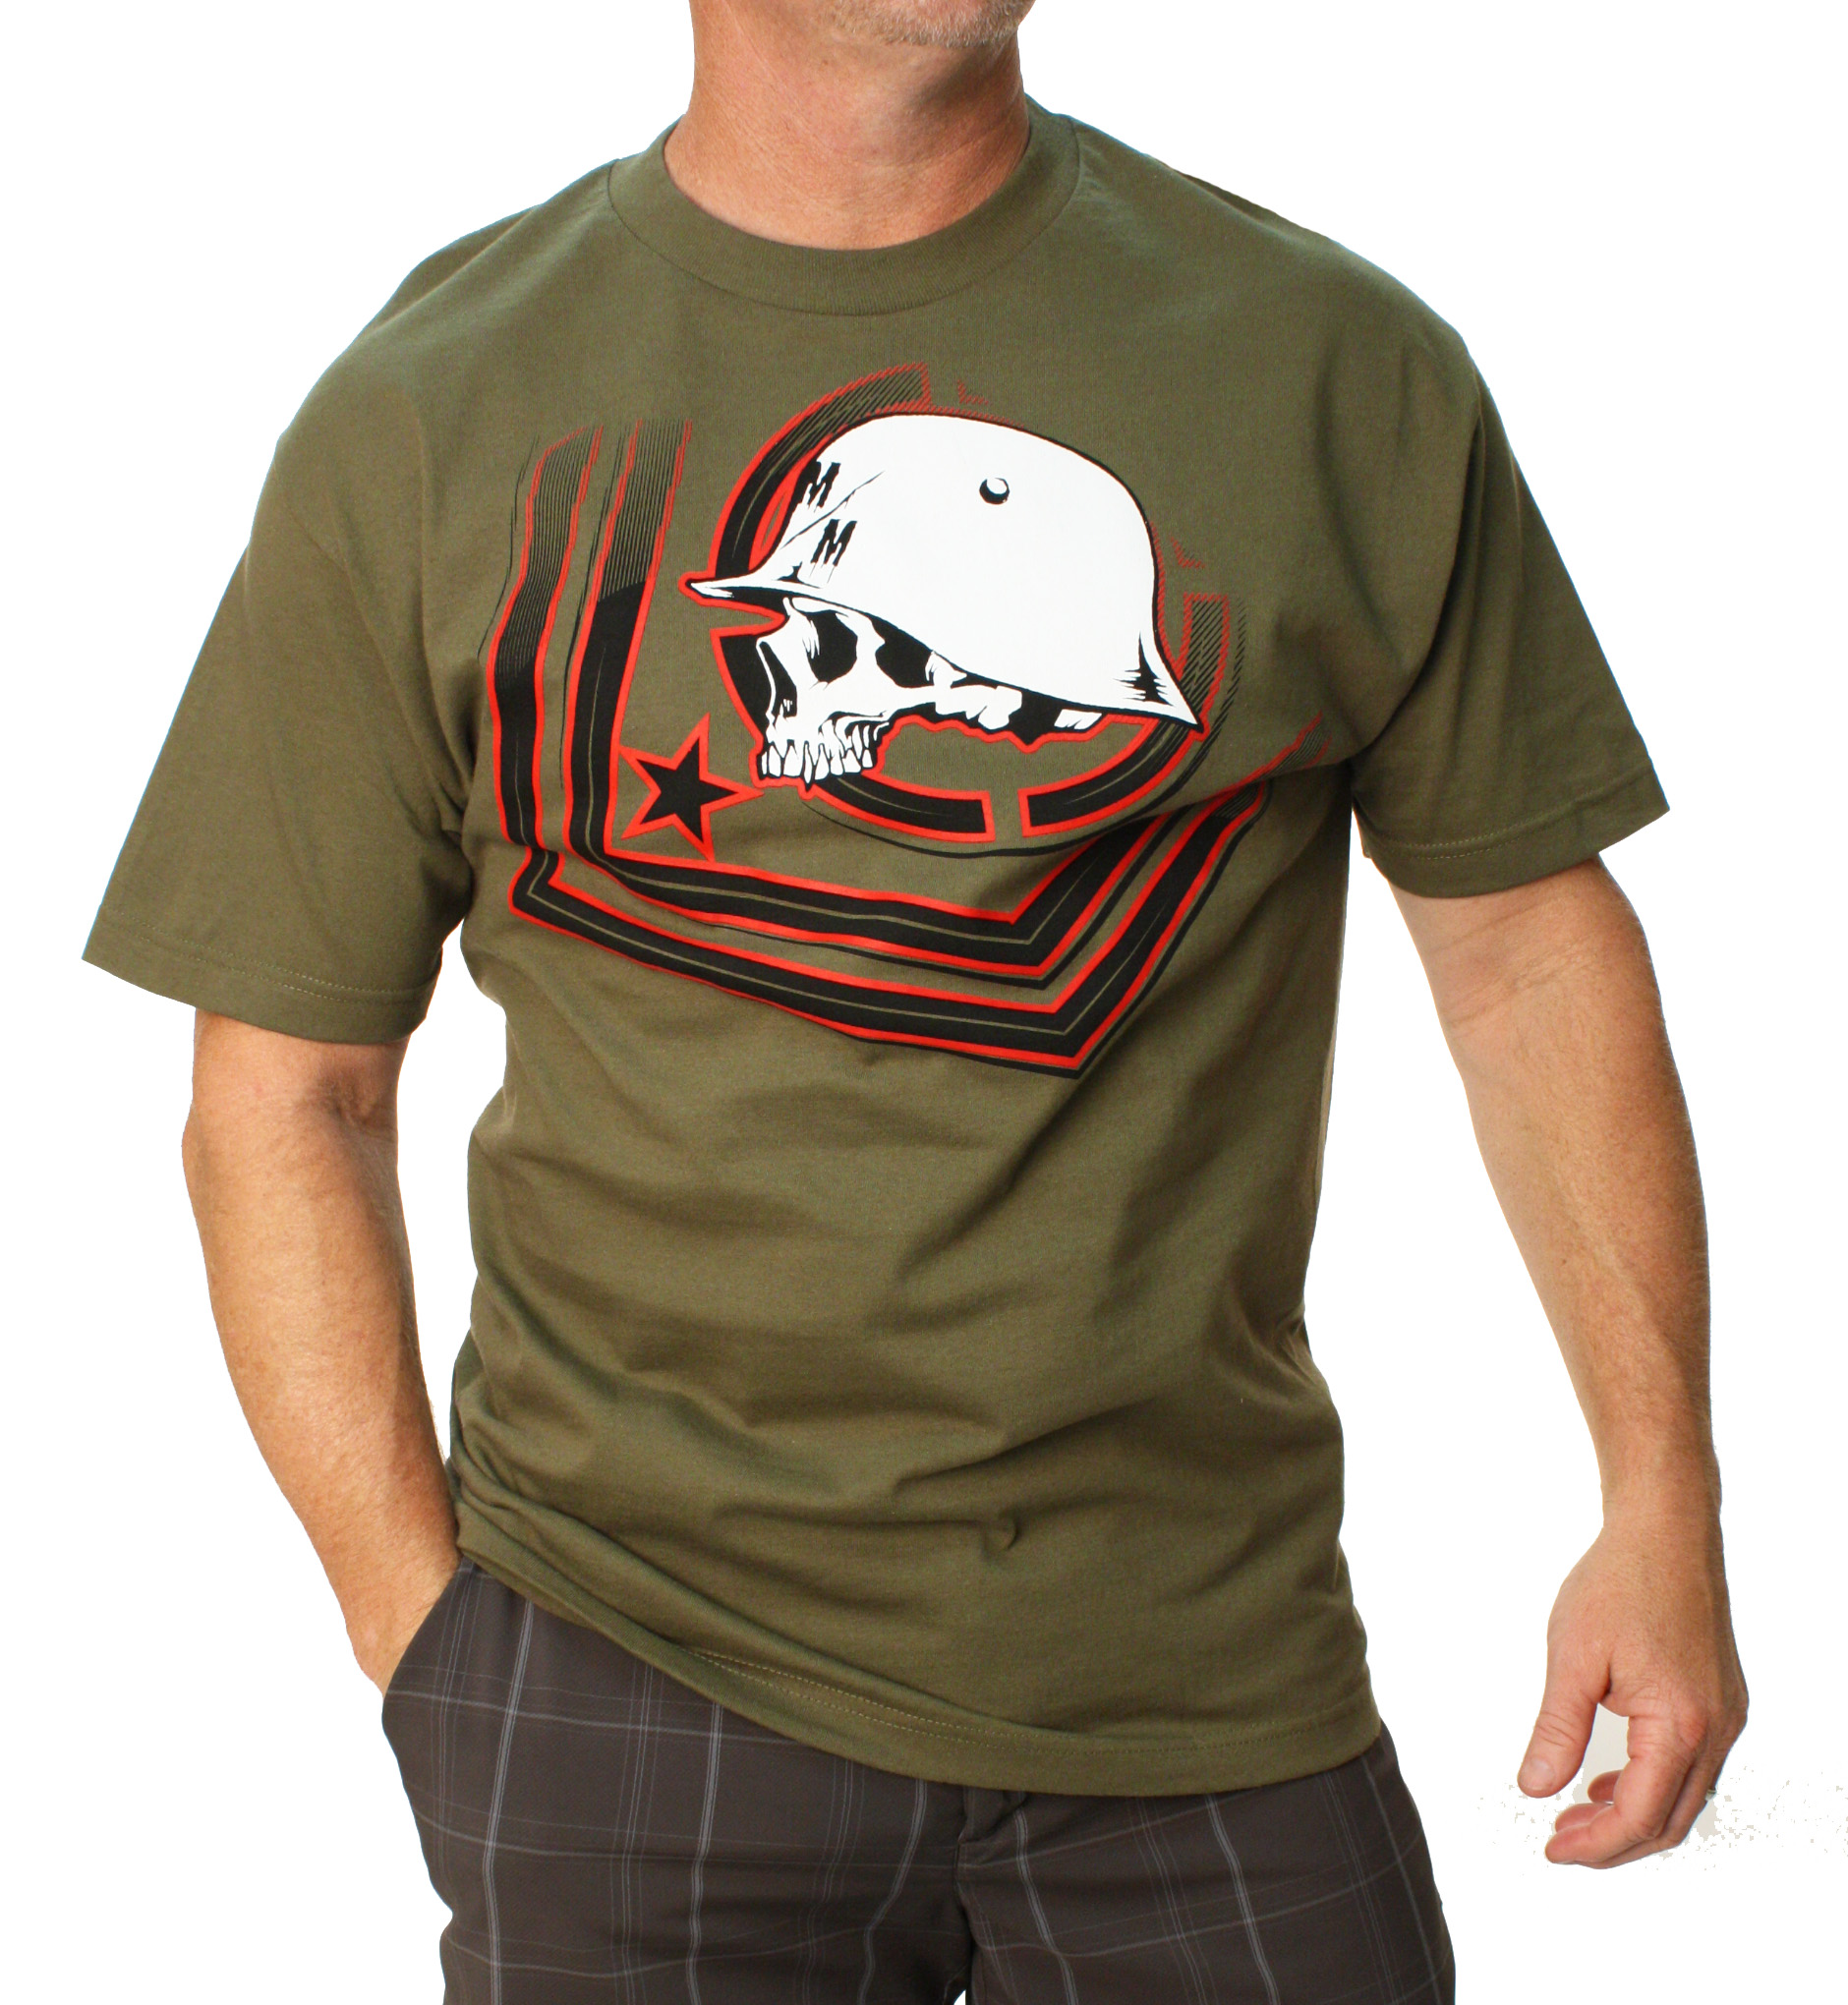 Metal Mulisha Men's Check Point Graphic T-Shirt